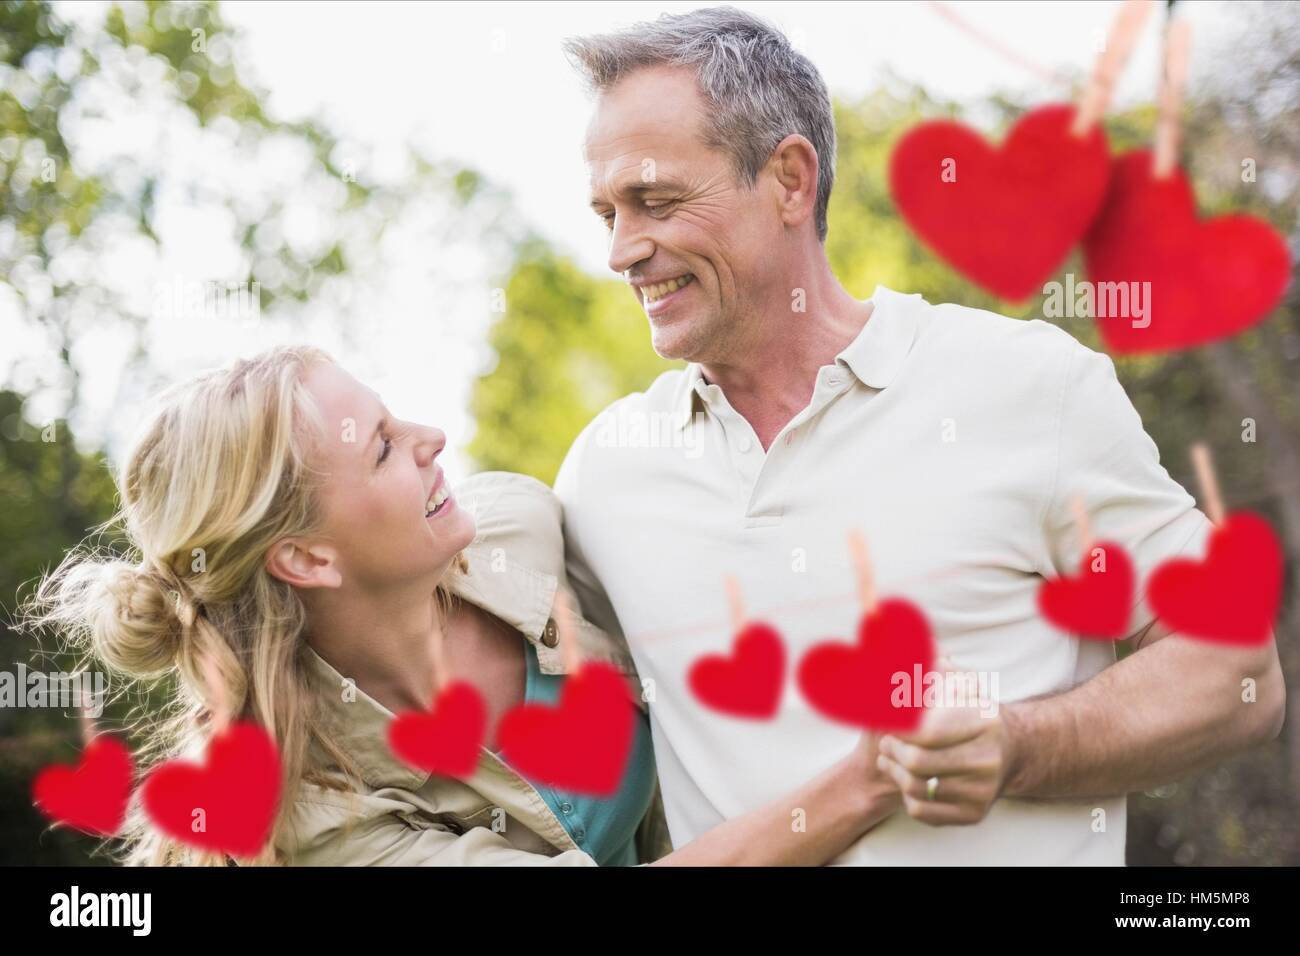 Couple having fun with red hanging hearts - Stock Image